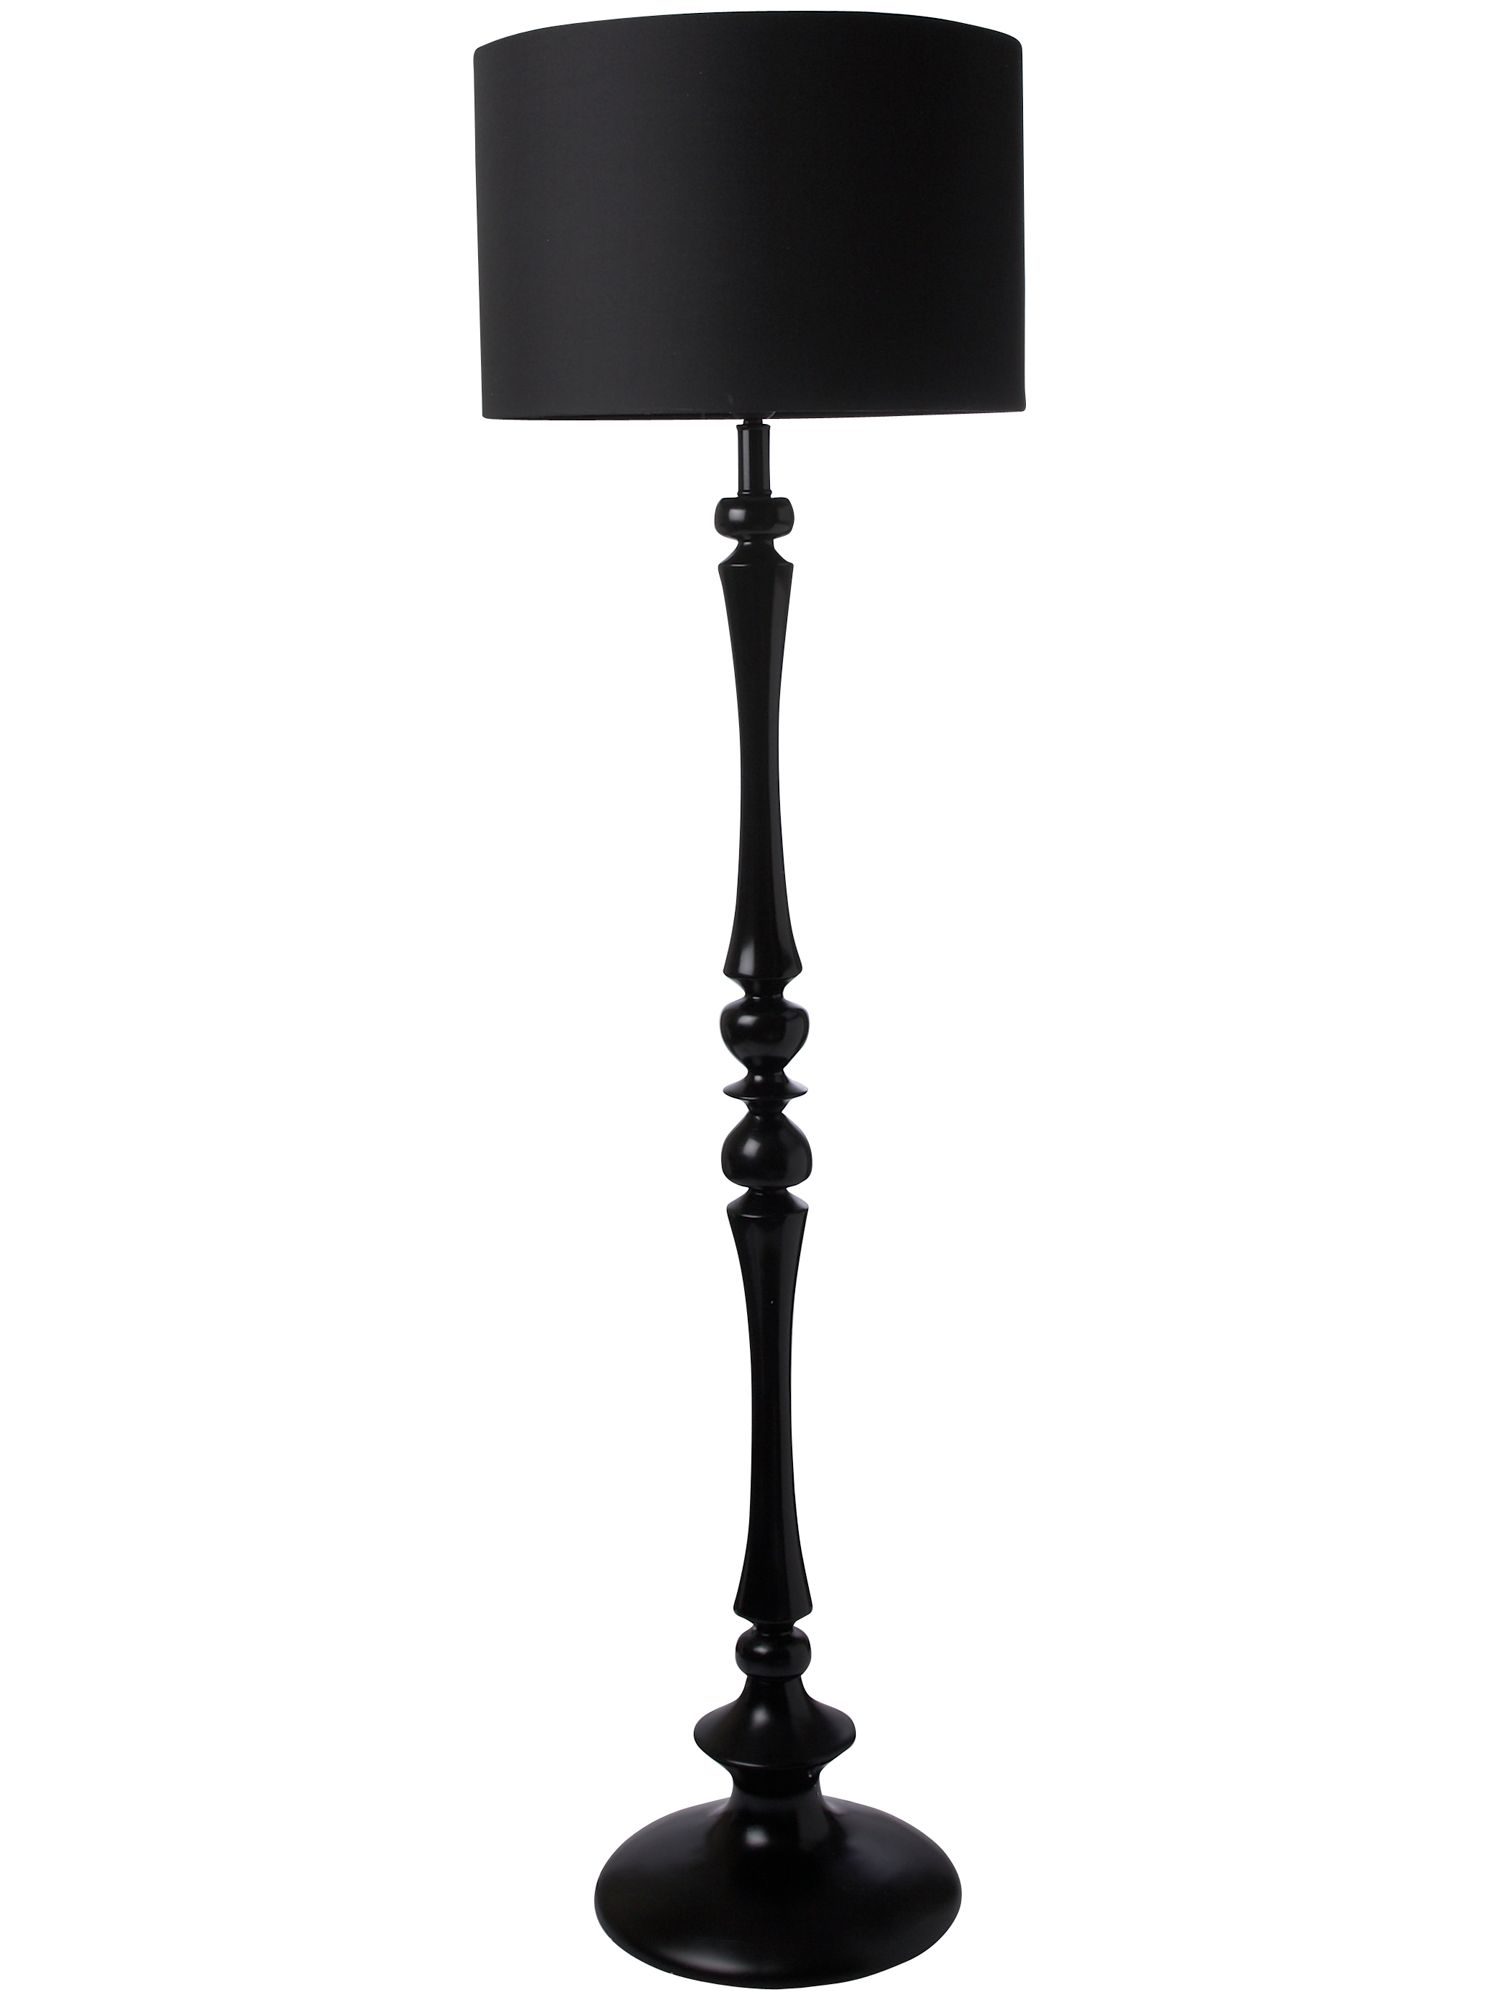 10 Reasons To Buy Black Tall Lamp Warisan Lighting